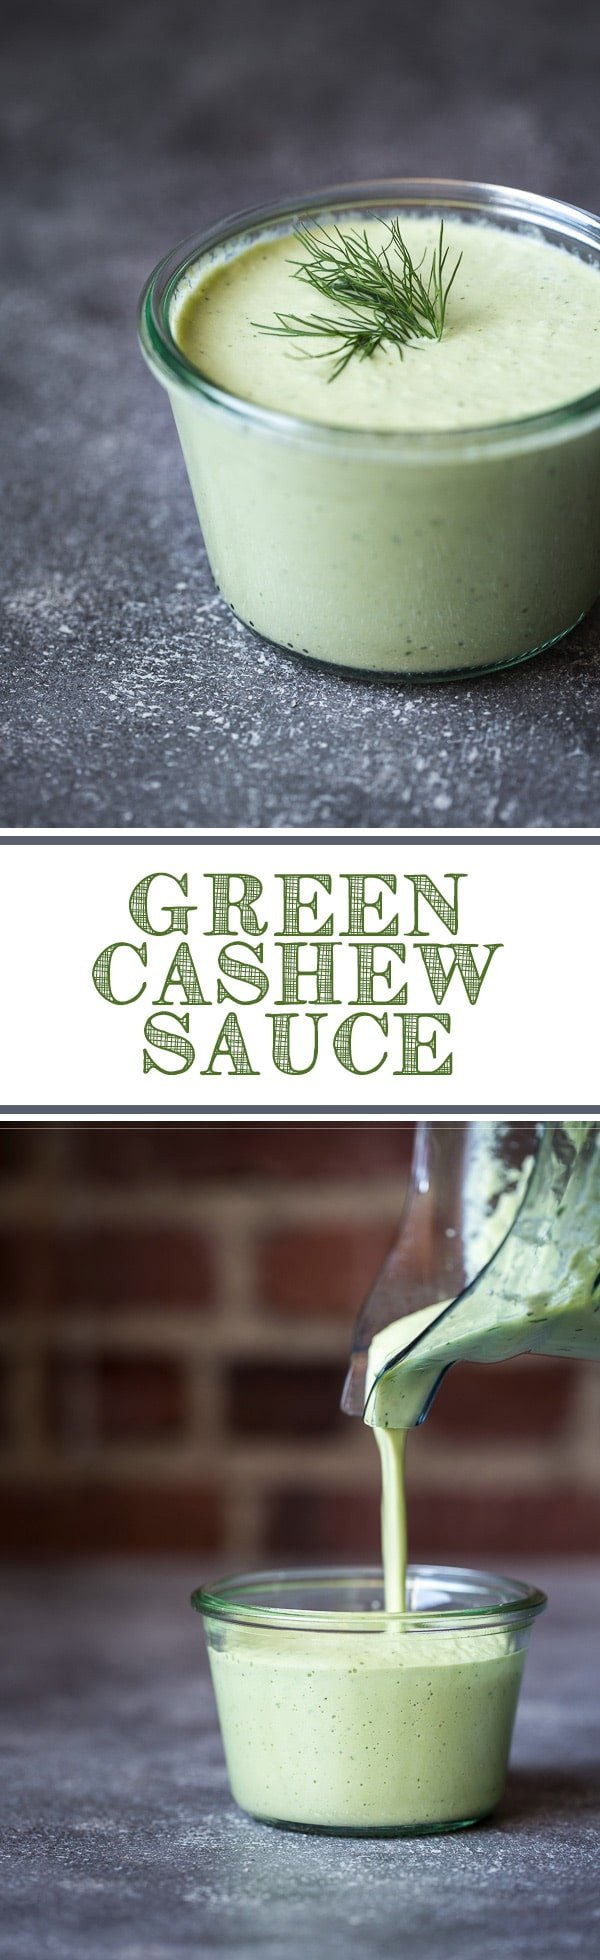 The Ultimate Green Cashew Recipe made with cashews, avocado, scallions, fresh herbs, and lemon juice. A vegan alternative to dairy-based sauces.